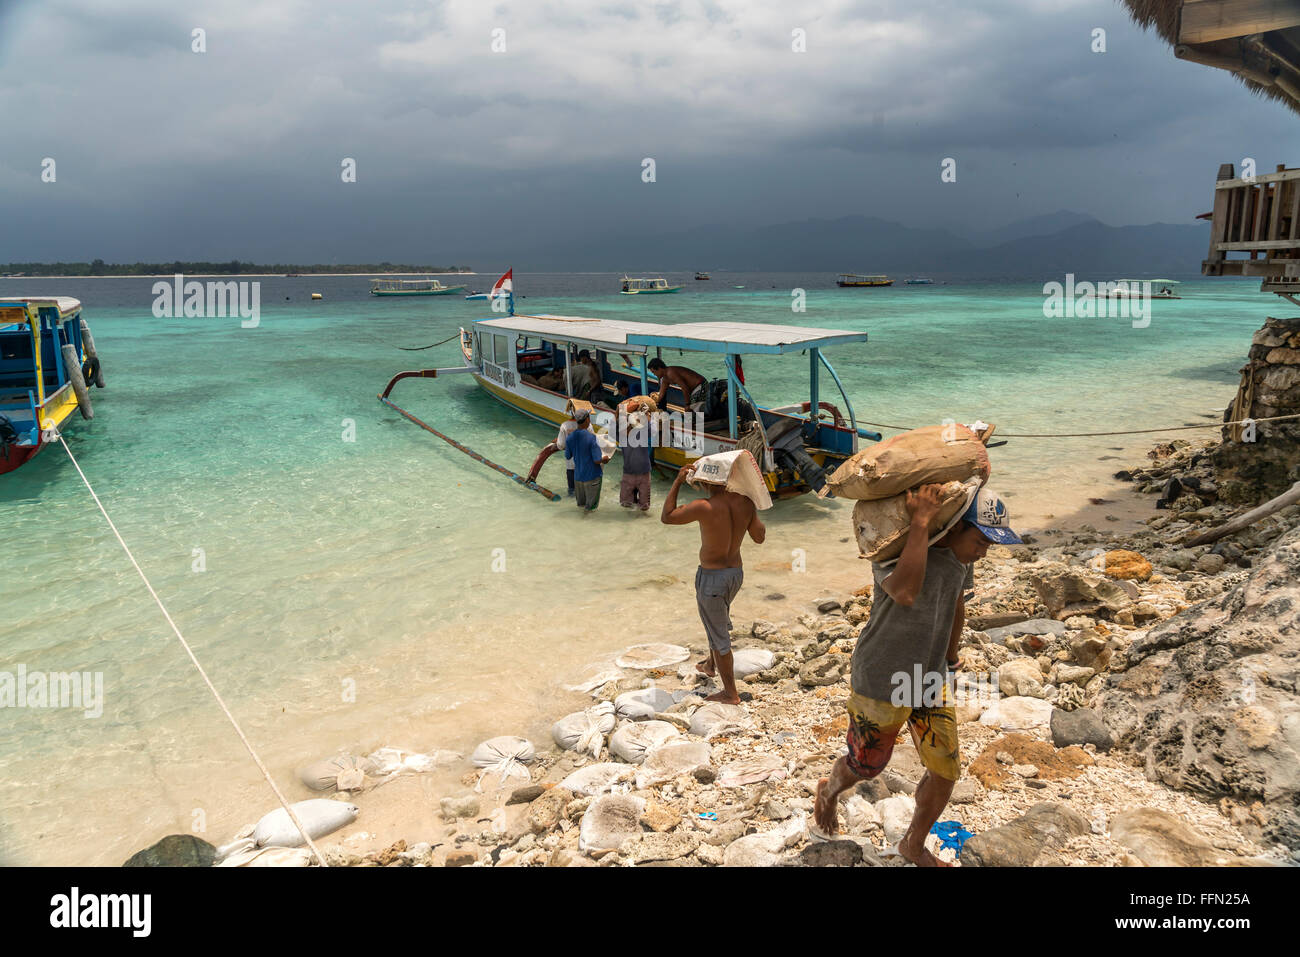 workers carrying construction materials to the small island Gili Meno, Lombok, Indonesia, Asia - Stock Image